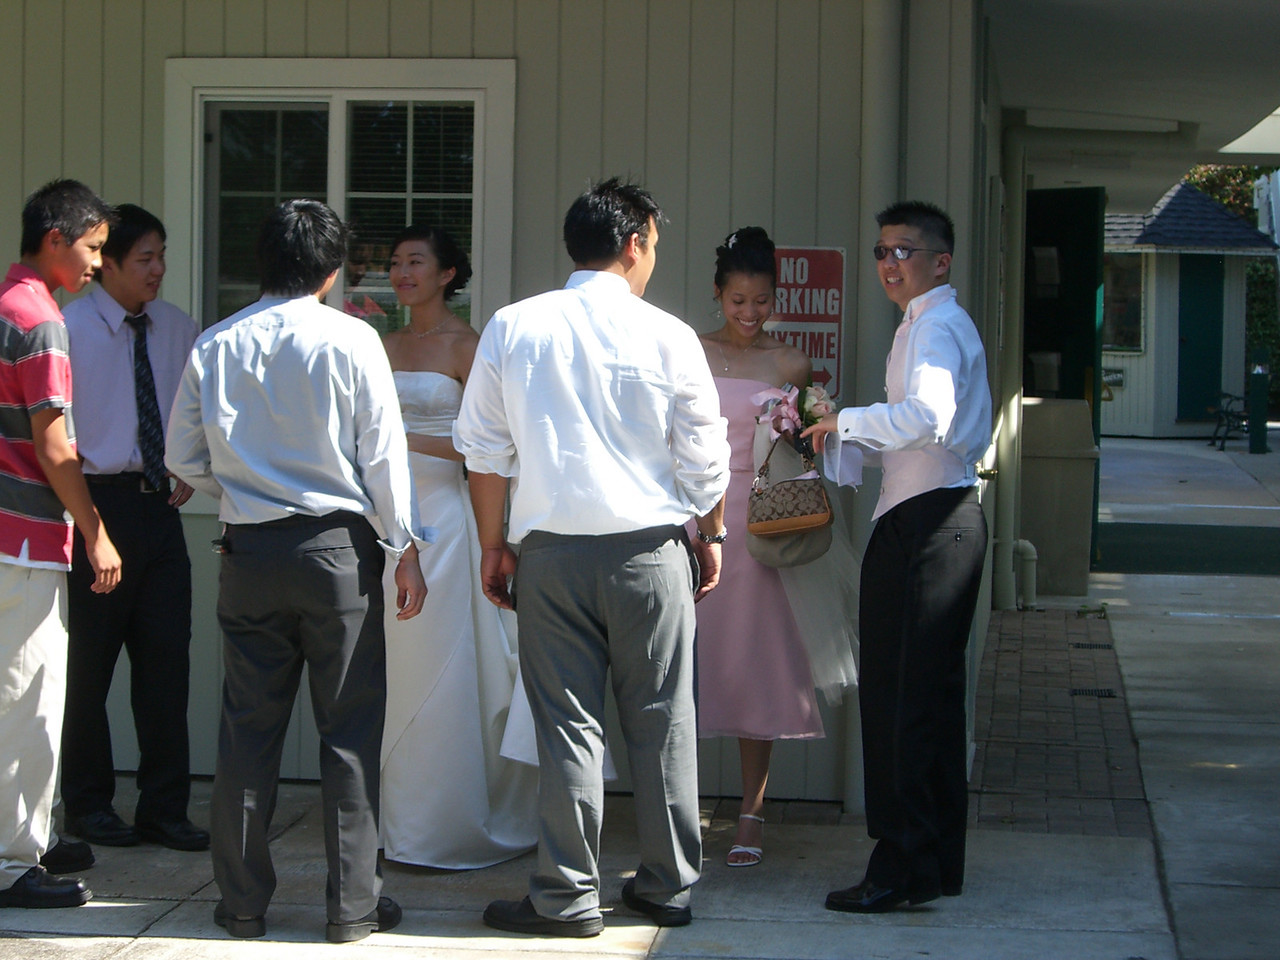 2006 06 24 Sat - Wedding party & helpers after the ceremony